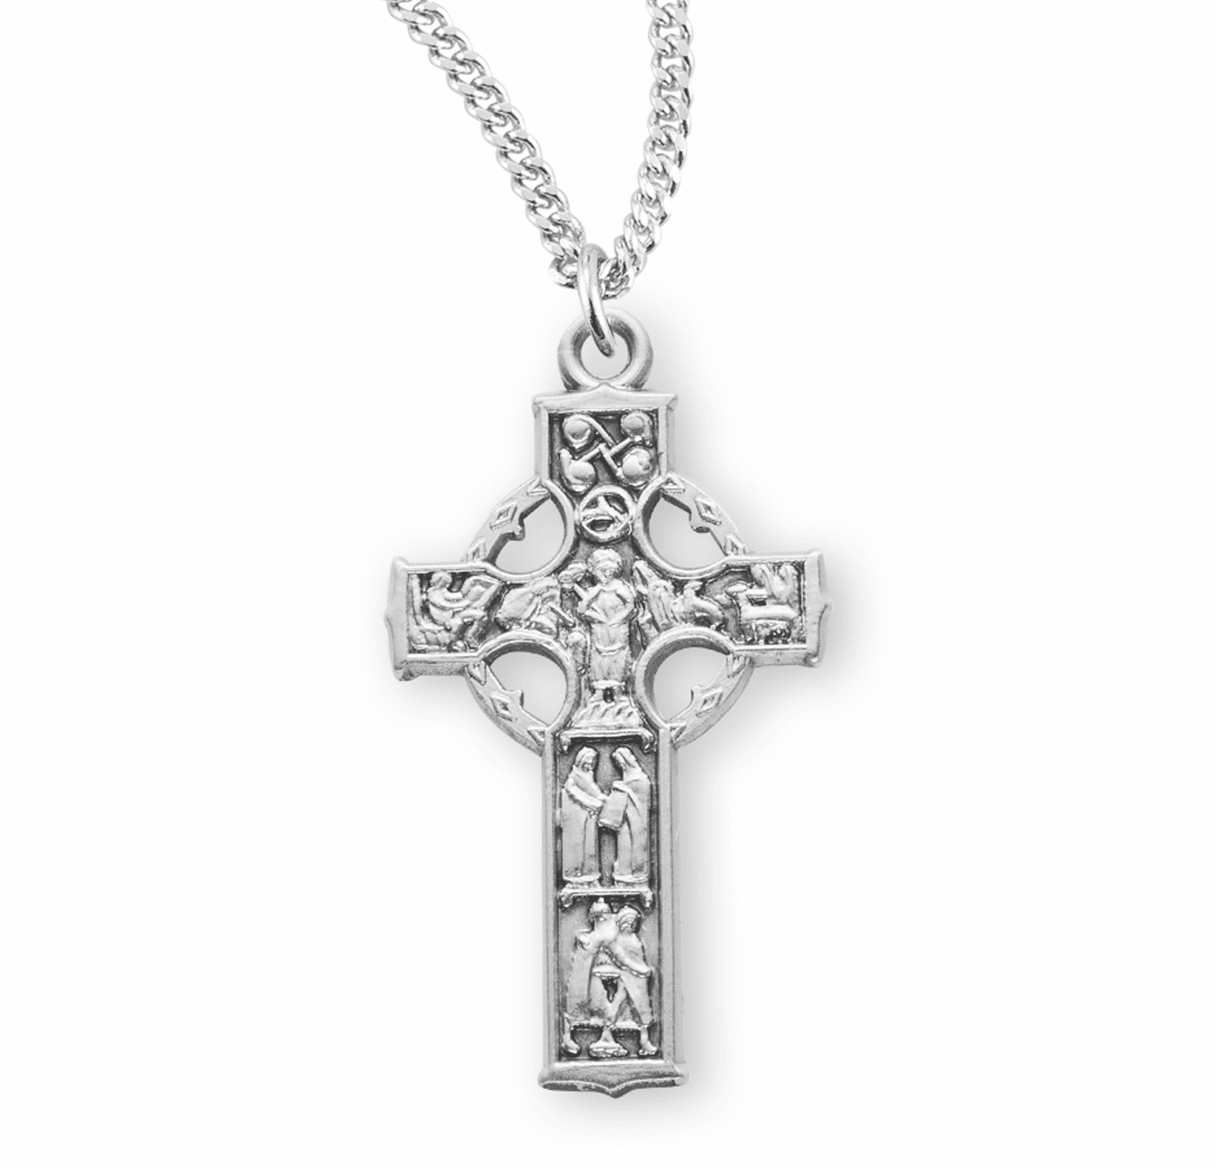 Small Sterling Silver Celtic Cross Necklace by HMH Religious